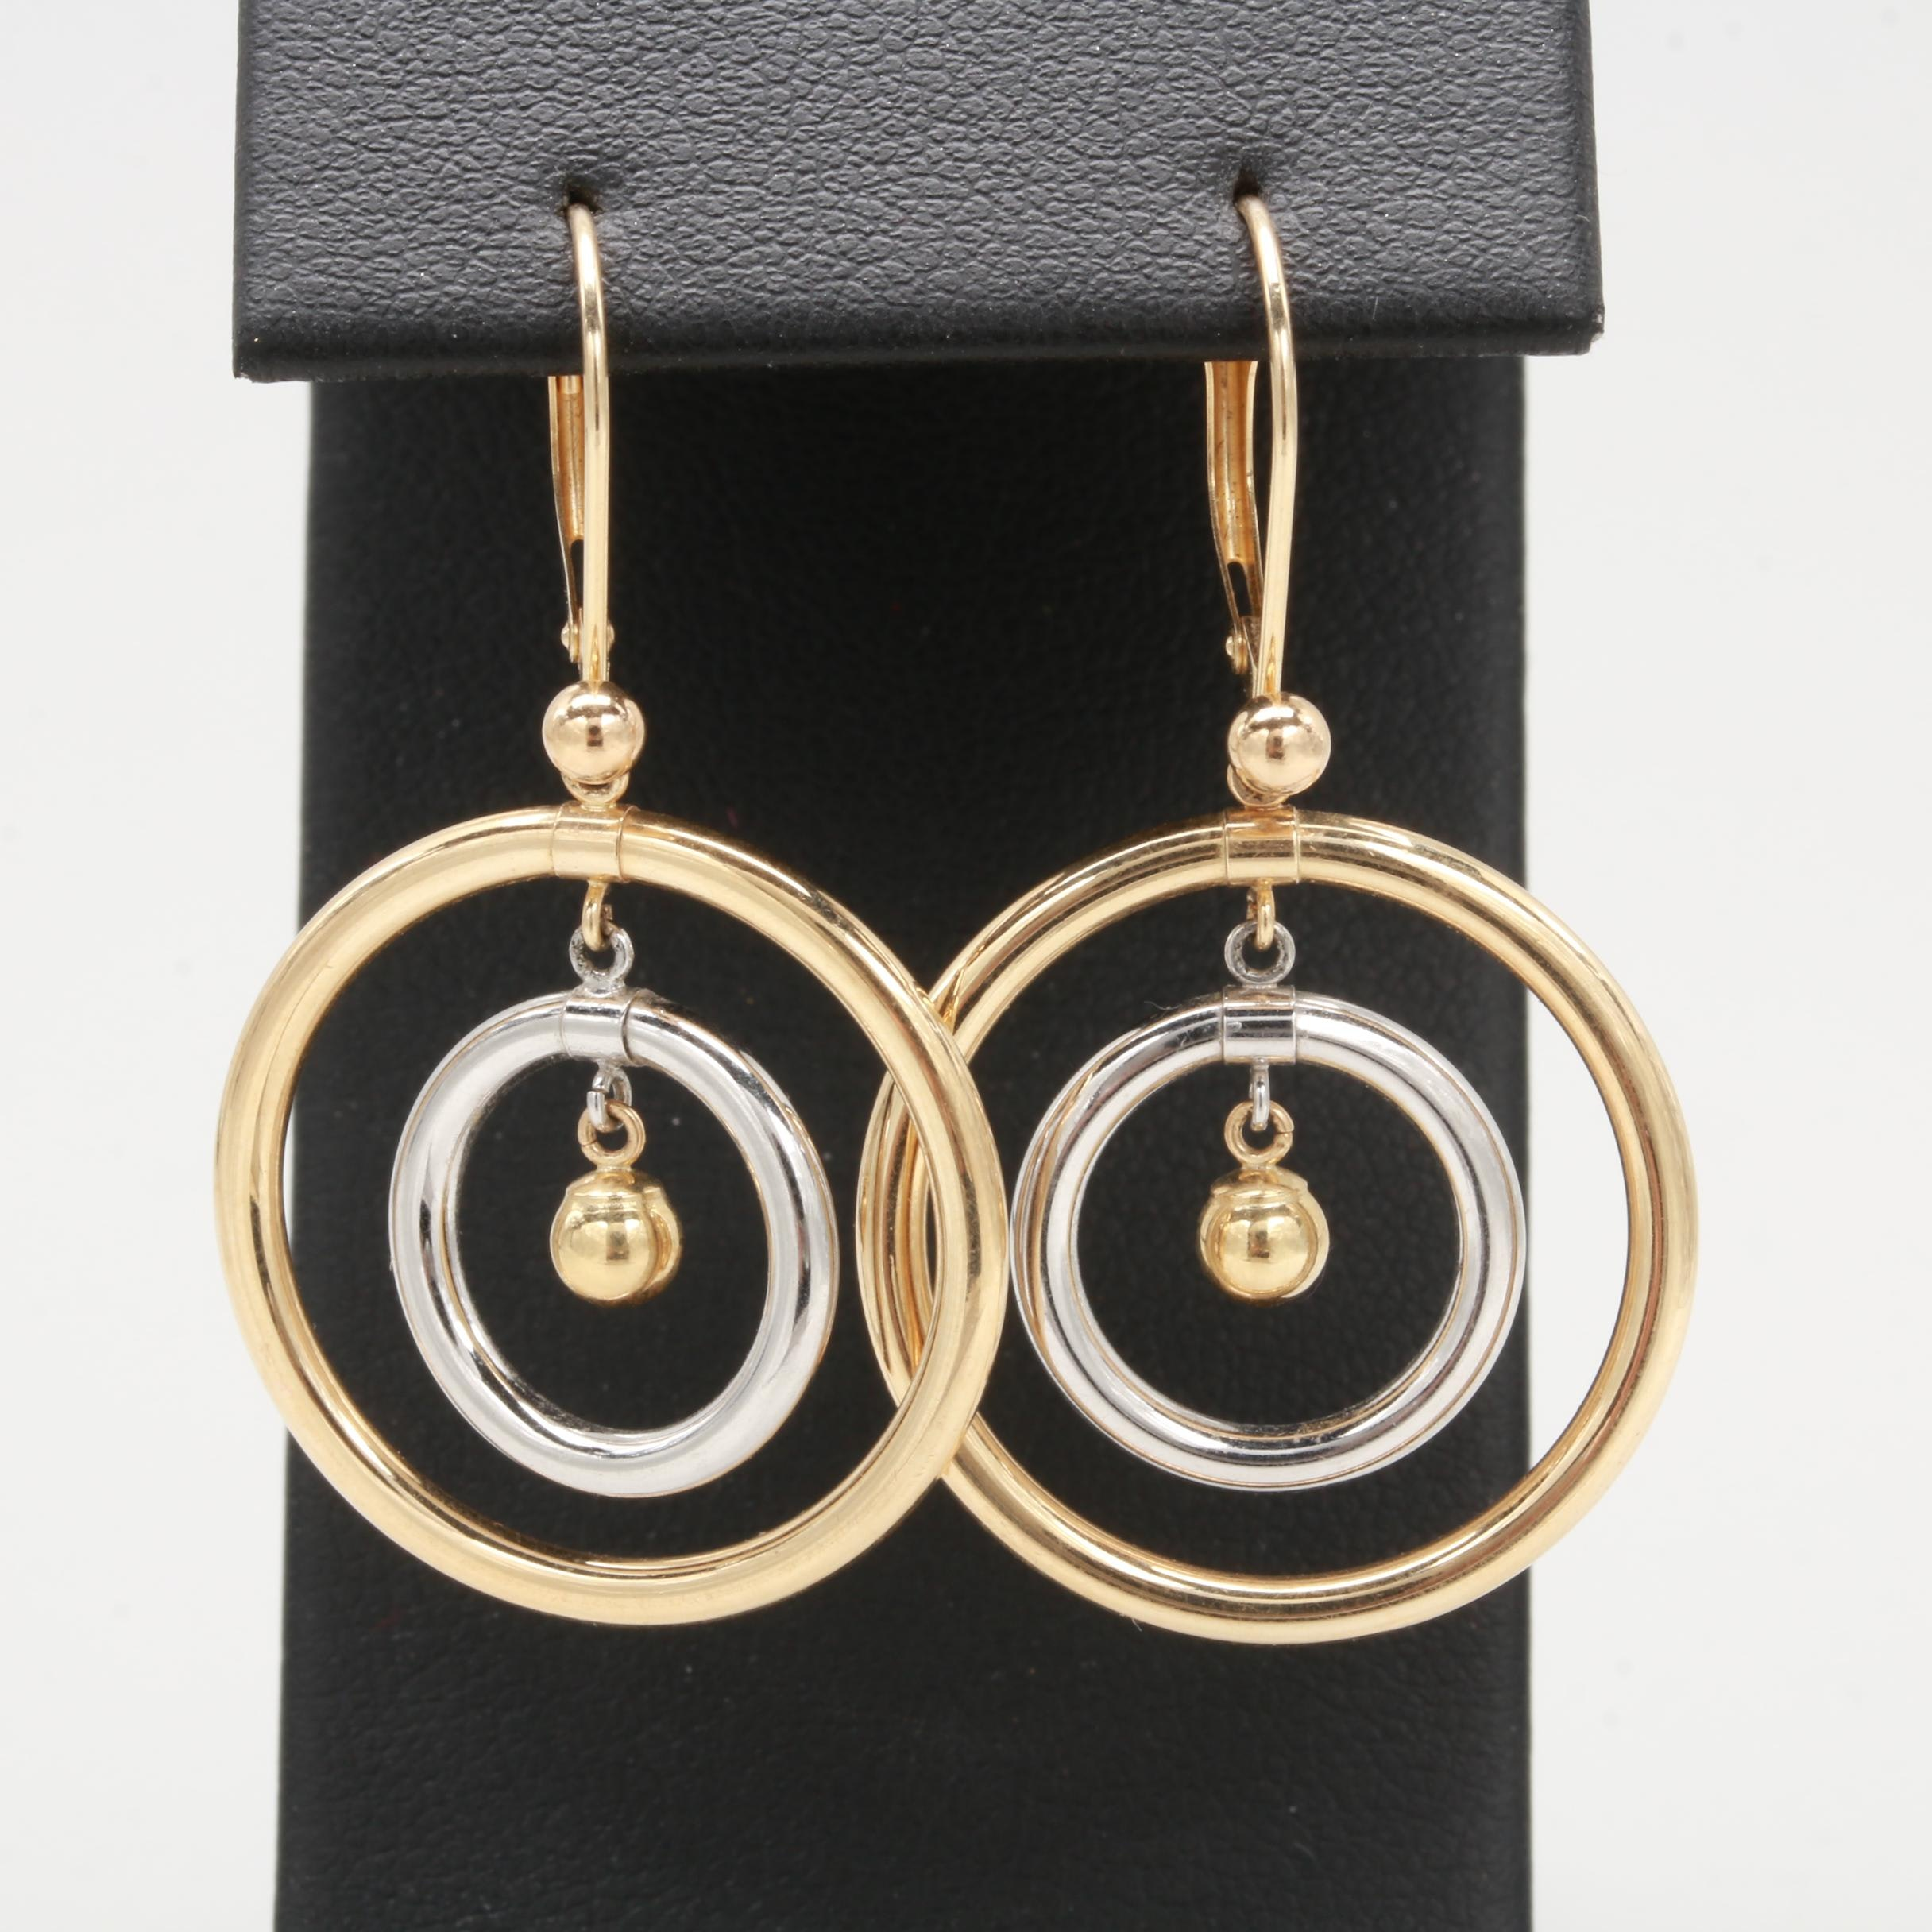 14K Yellow and White Gold Circle Drop Earrings